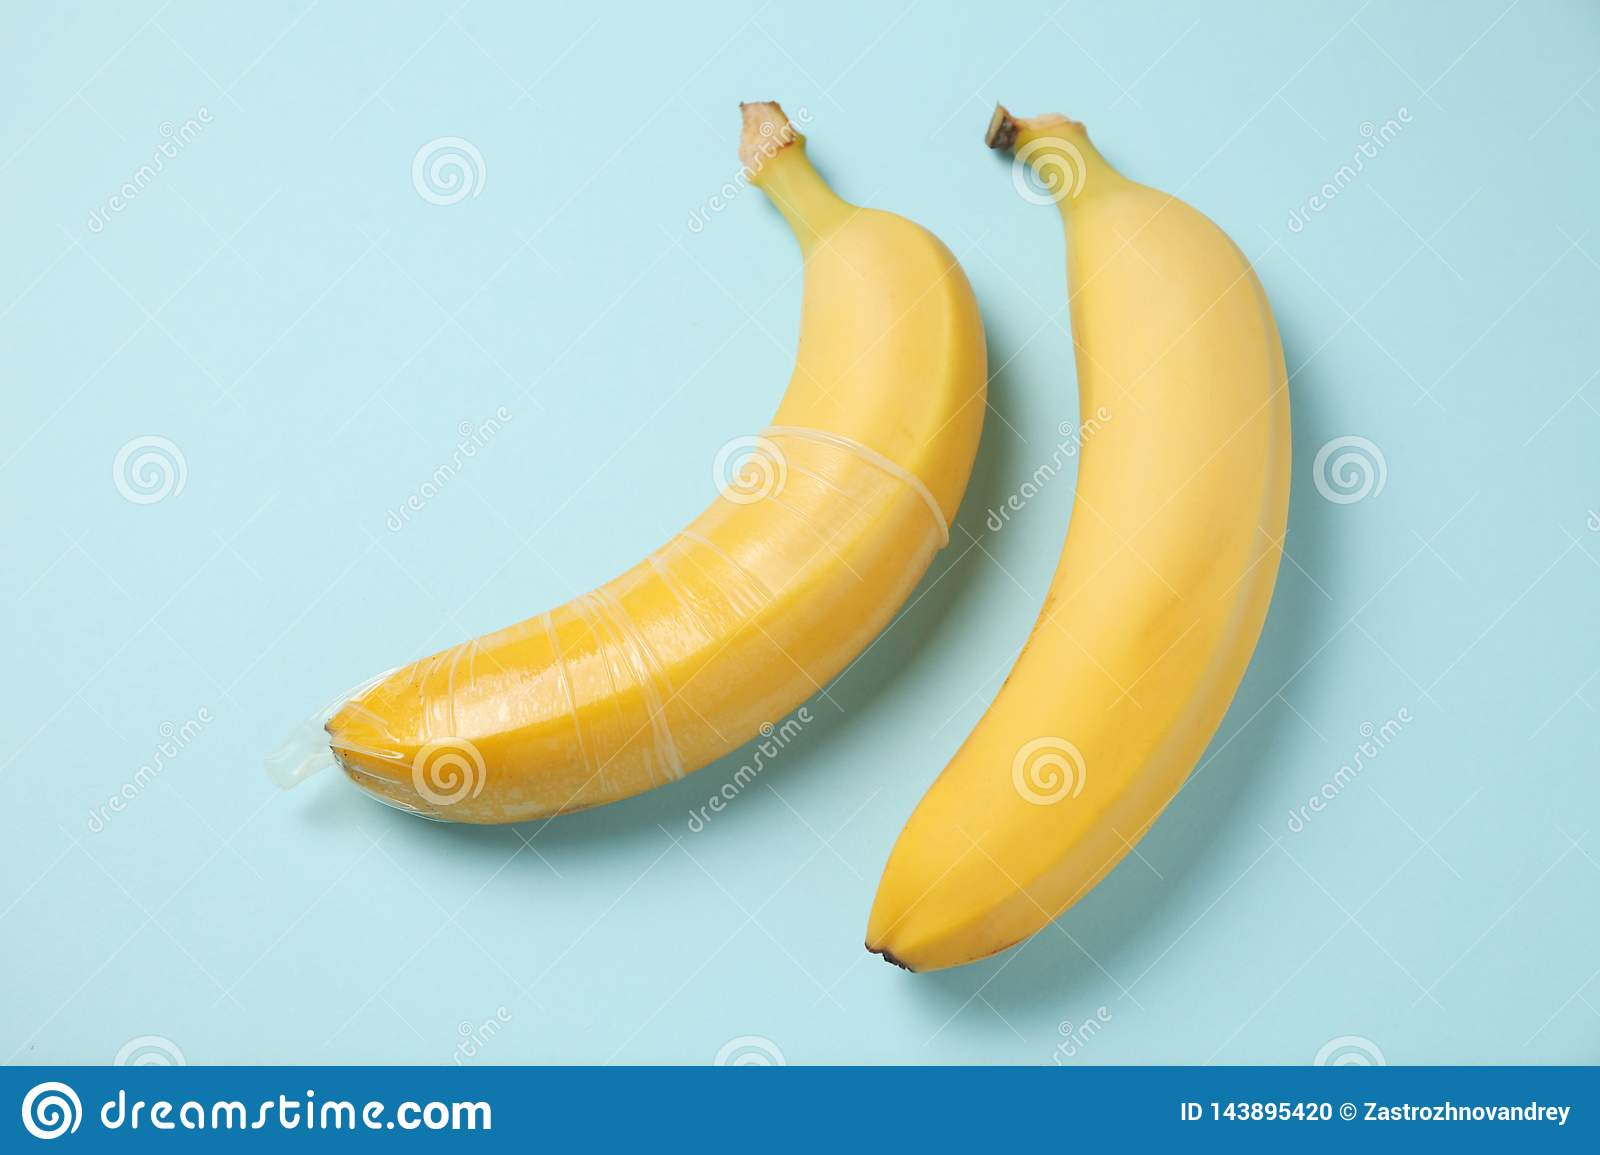 Yellow banana with condom, concept of protected sex